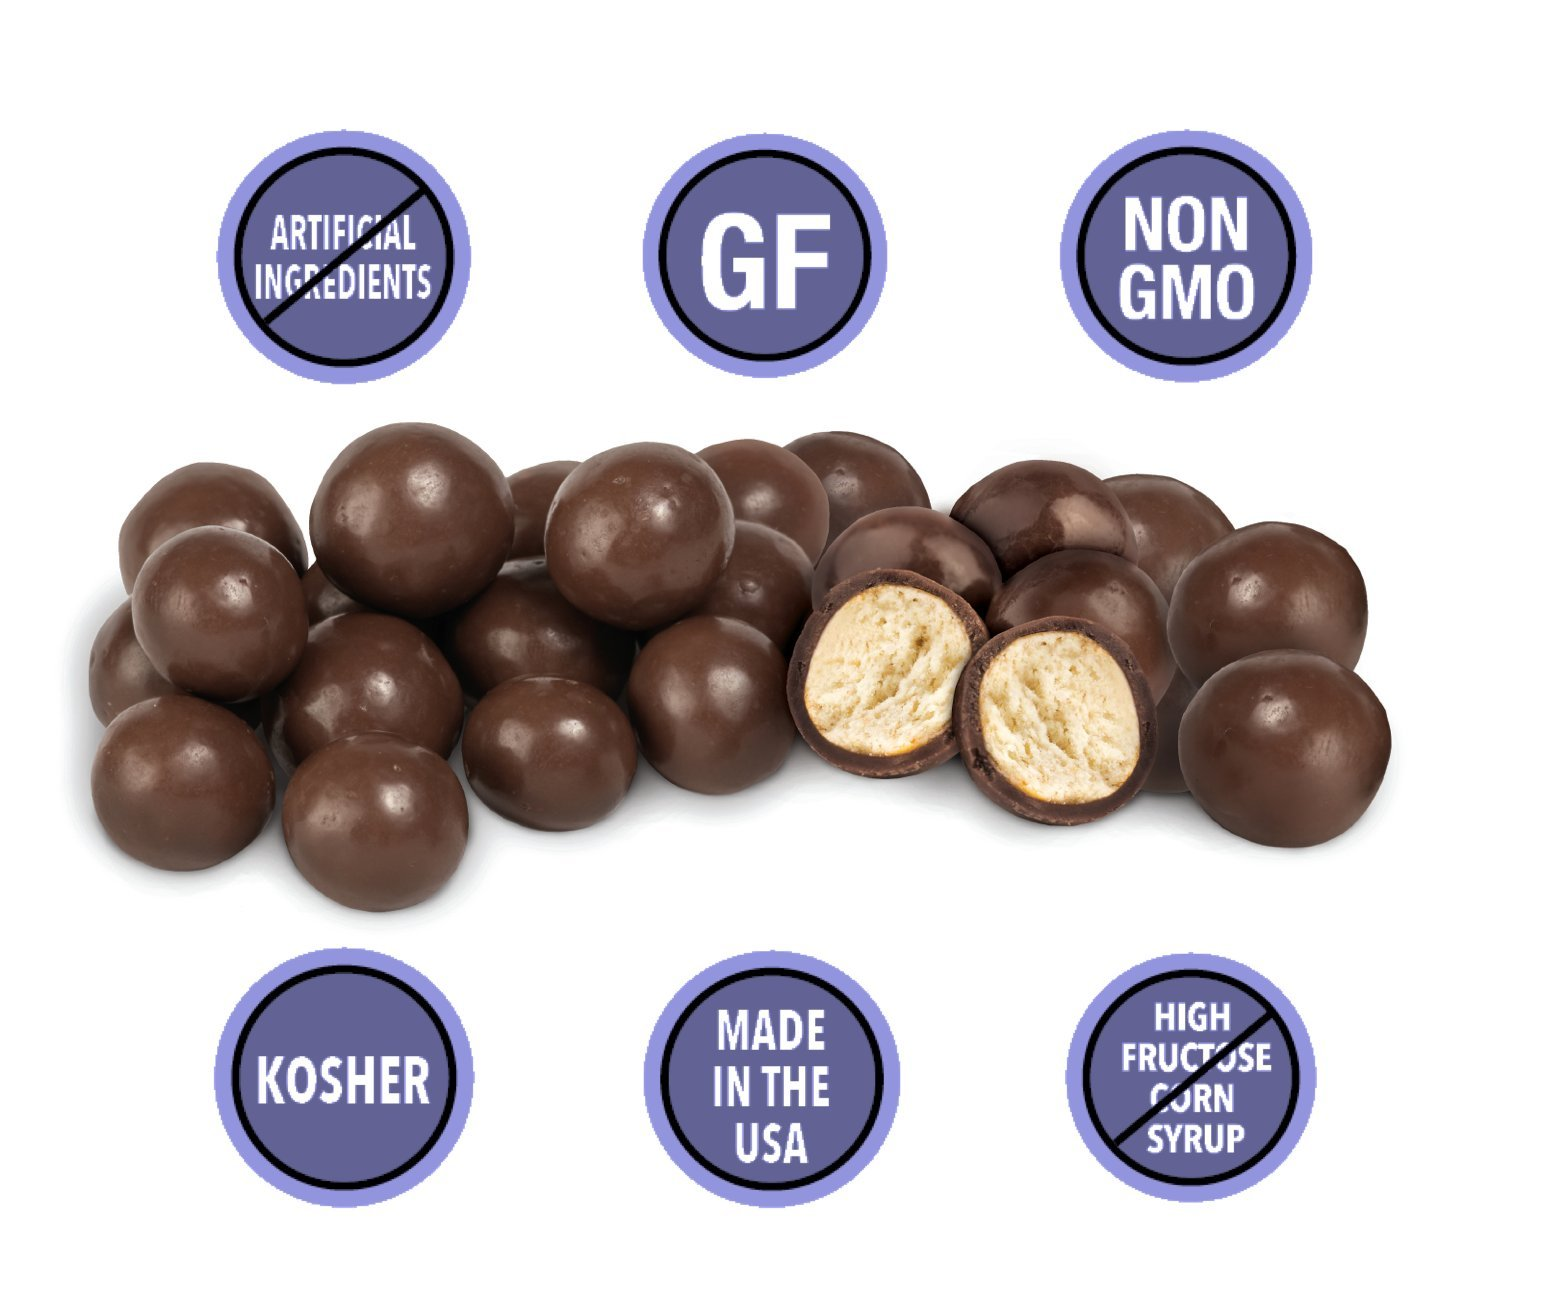 GLUTEN-FREE DARK CHOCOLATE Covered Pretzel Balls (3-Pack) - Lovely Candy Co. (3) 6oz Bags - NON-GMO, NO HFCS, RBST-FREE & Gluten-Free, Consciously crafted in the USA!